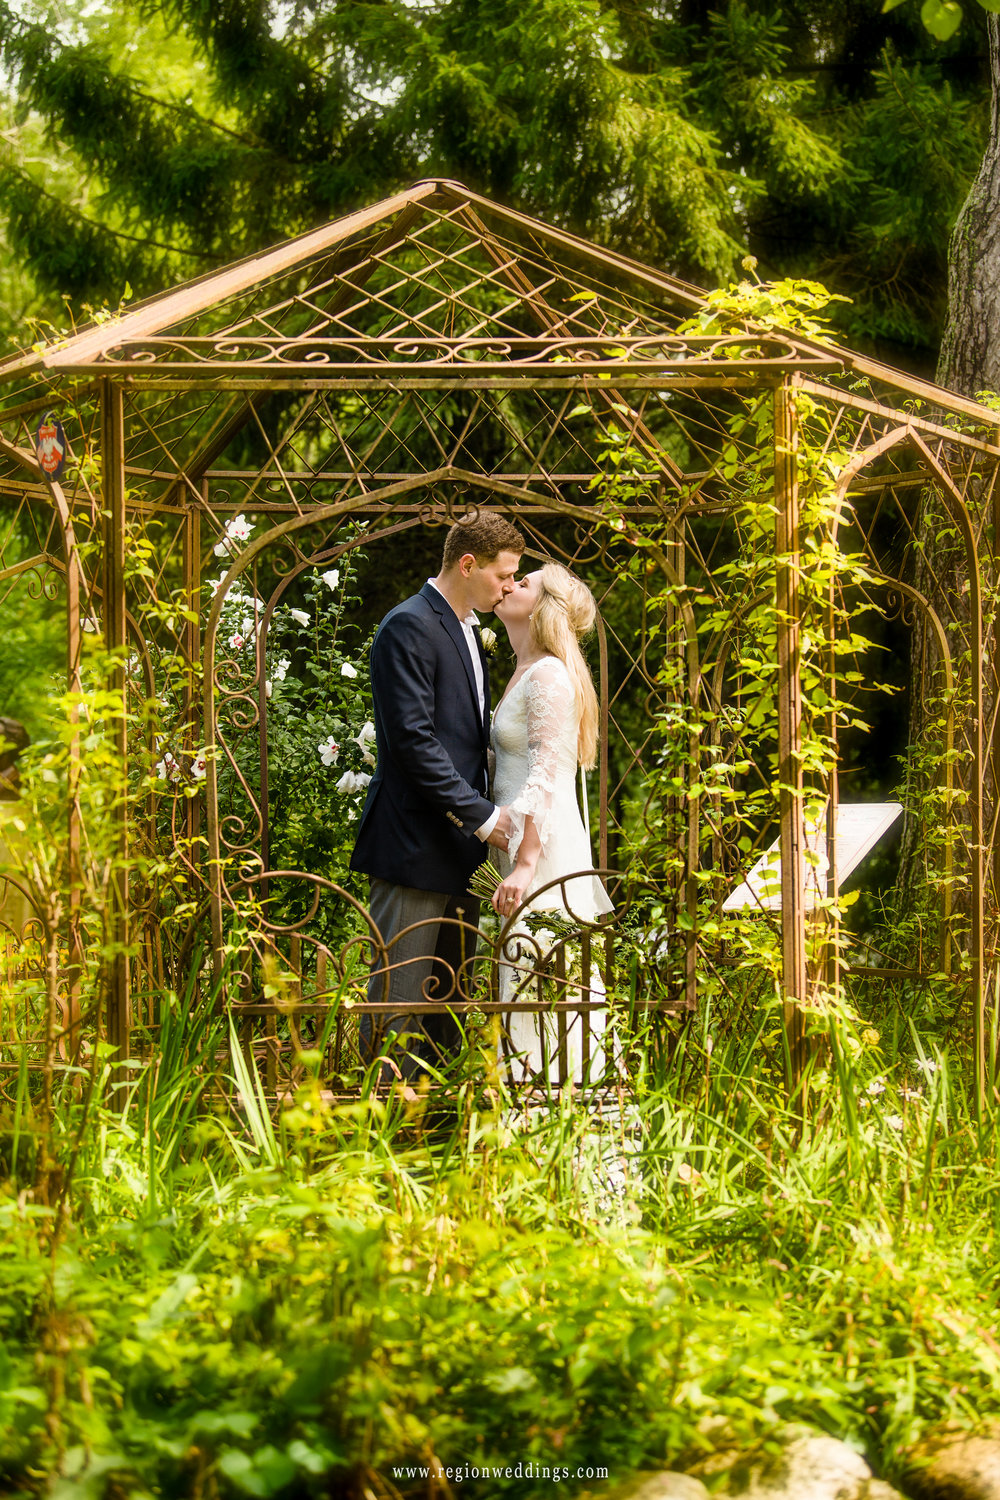 Kiss inside the gazebo.